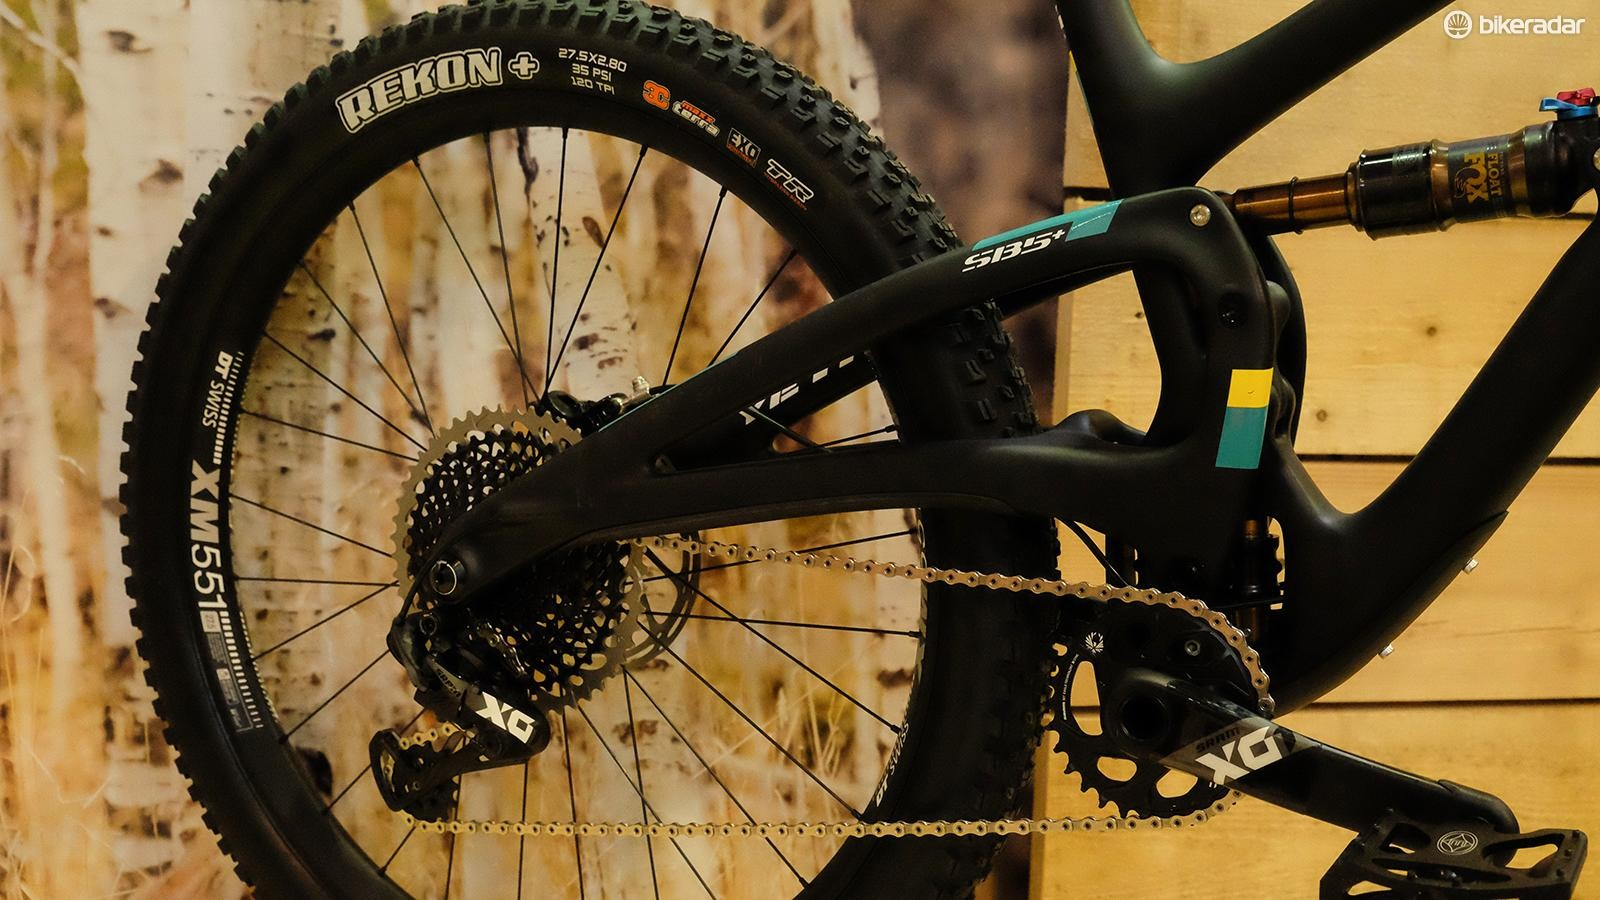 Yeti used an elevated chainstay design on the SB5+ to maximize tire clearance without making the rear end too long